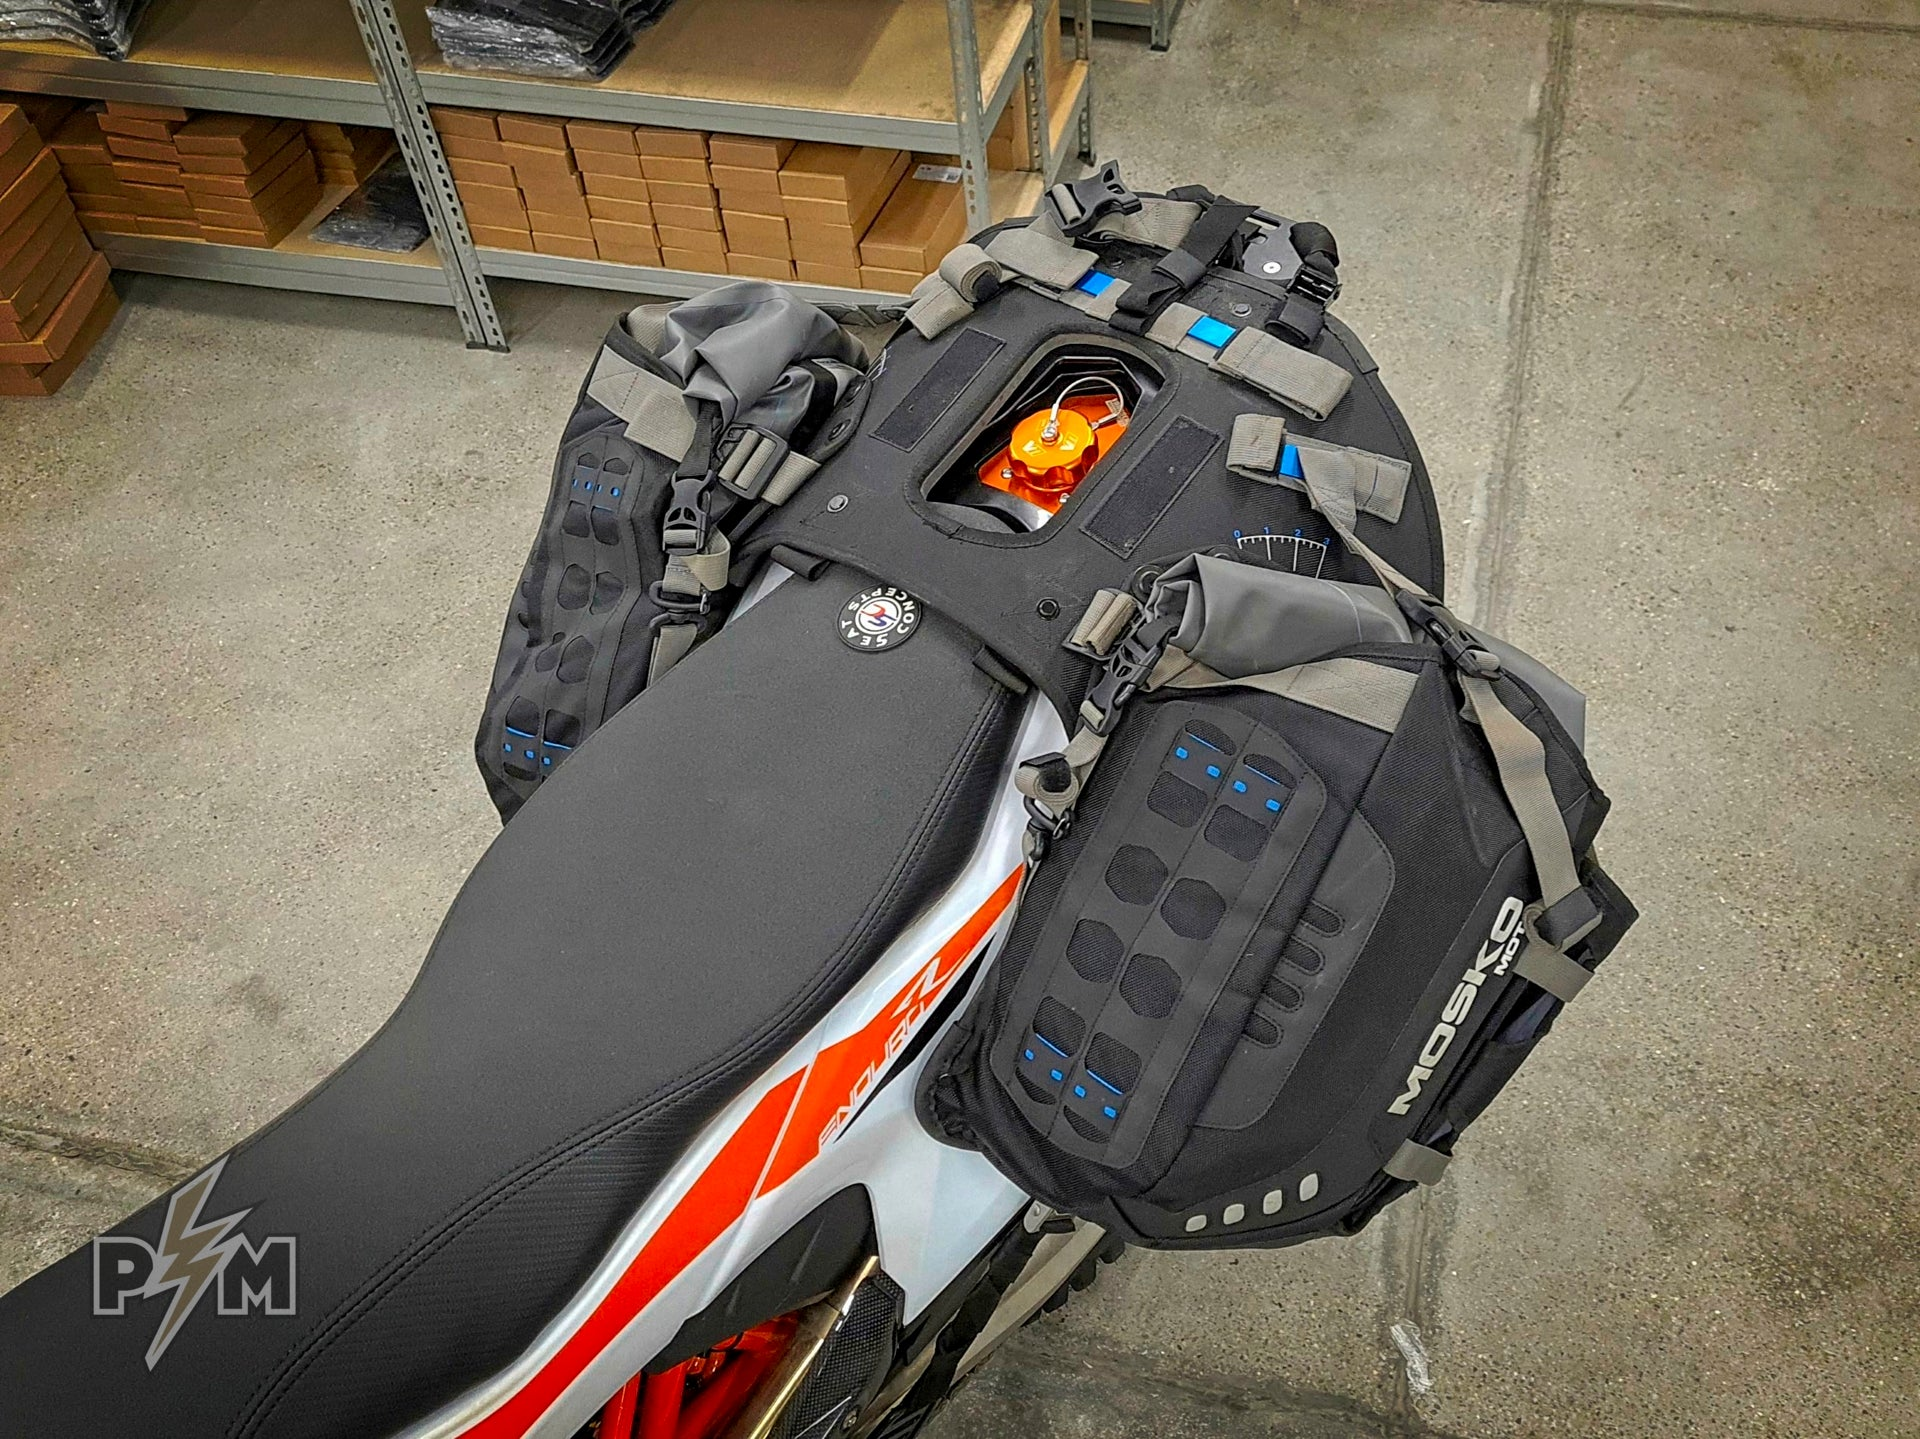 Mosko moto Reckless 80 Revolver (v3.0) on 2019 KTM 690 Enduro R